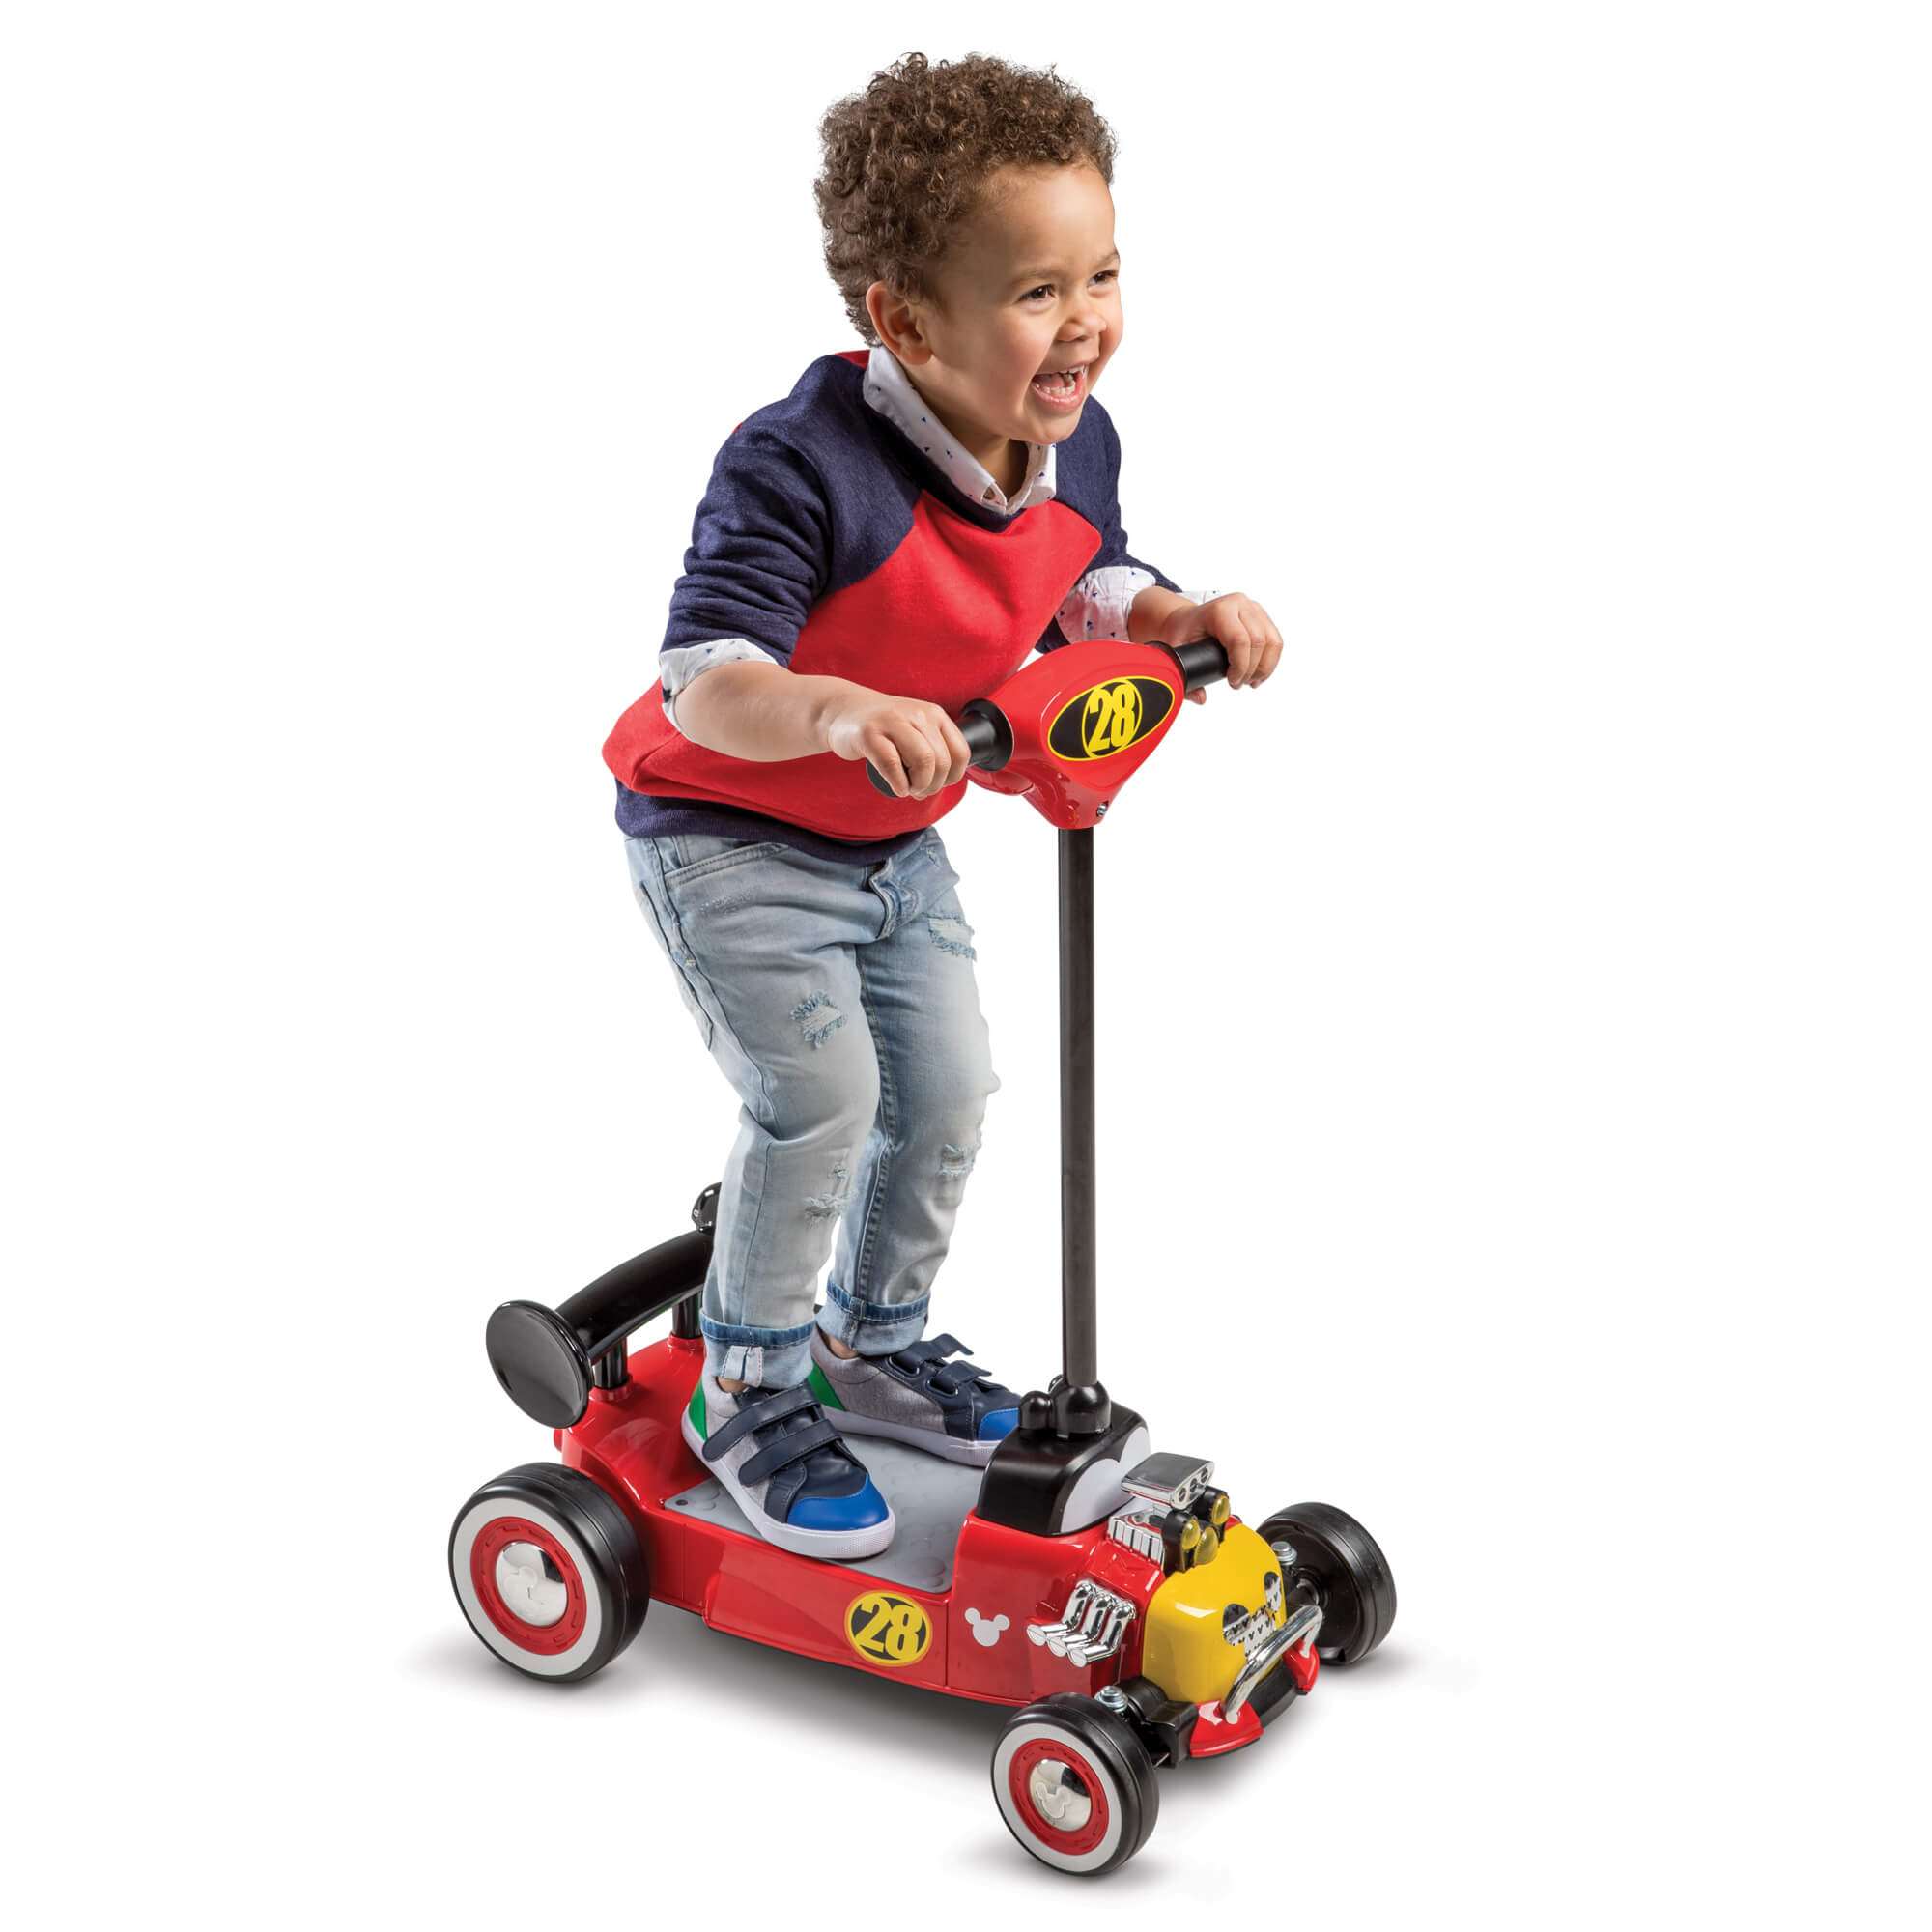 Disney Mickey Boys 6V Battery-Powered Ride-On Scooter by Huffy by Huffy